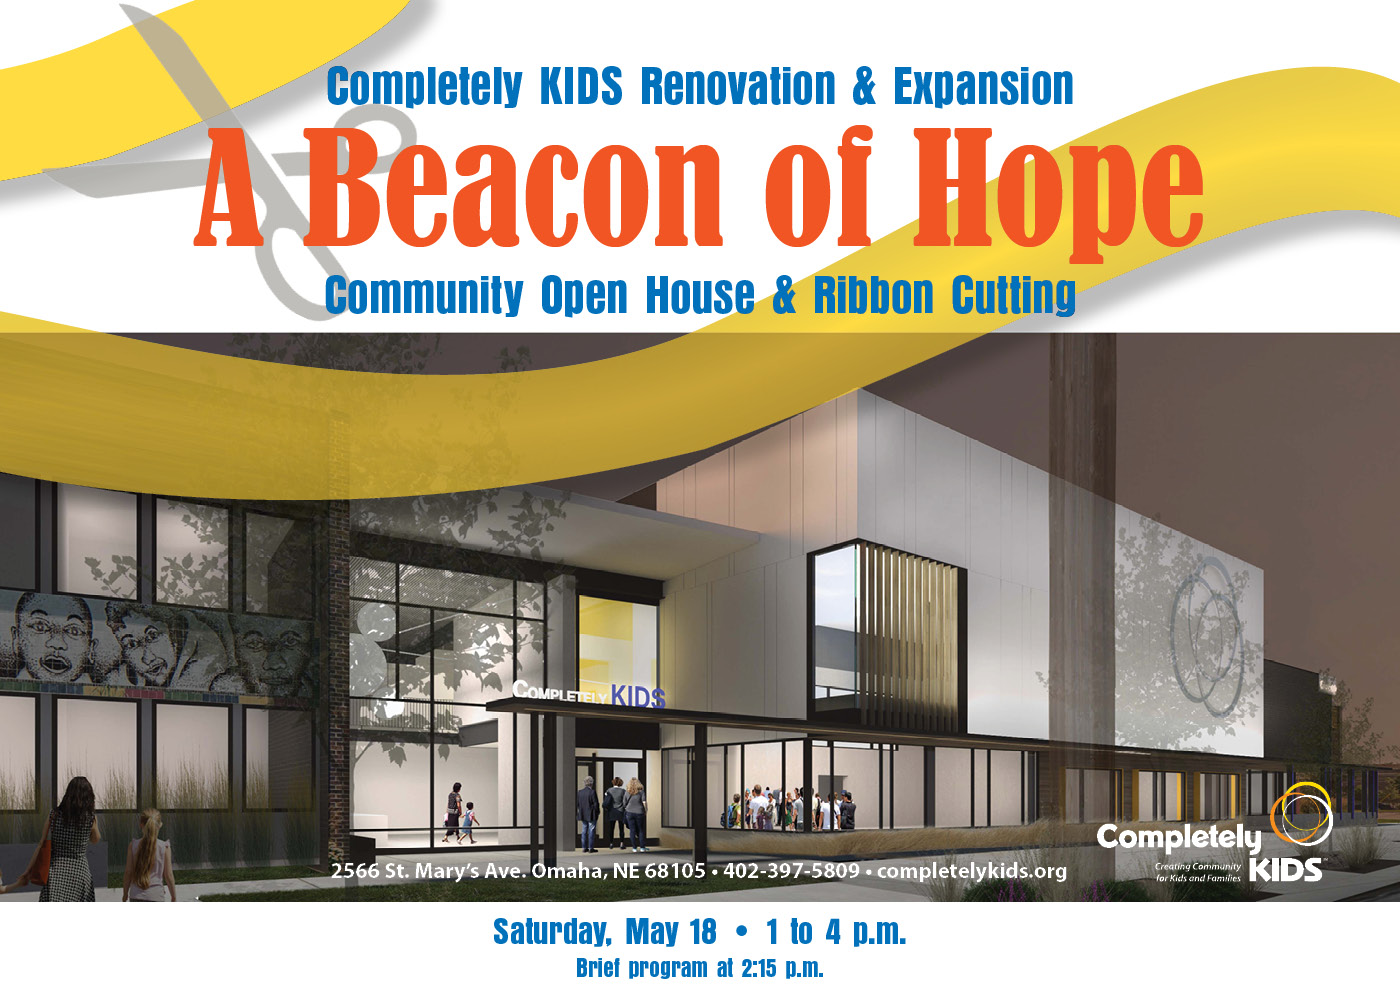 Join Us for Our Open House & Ribbon Cutting